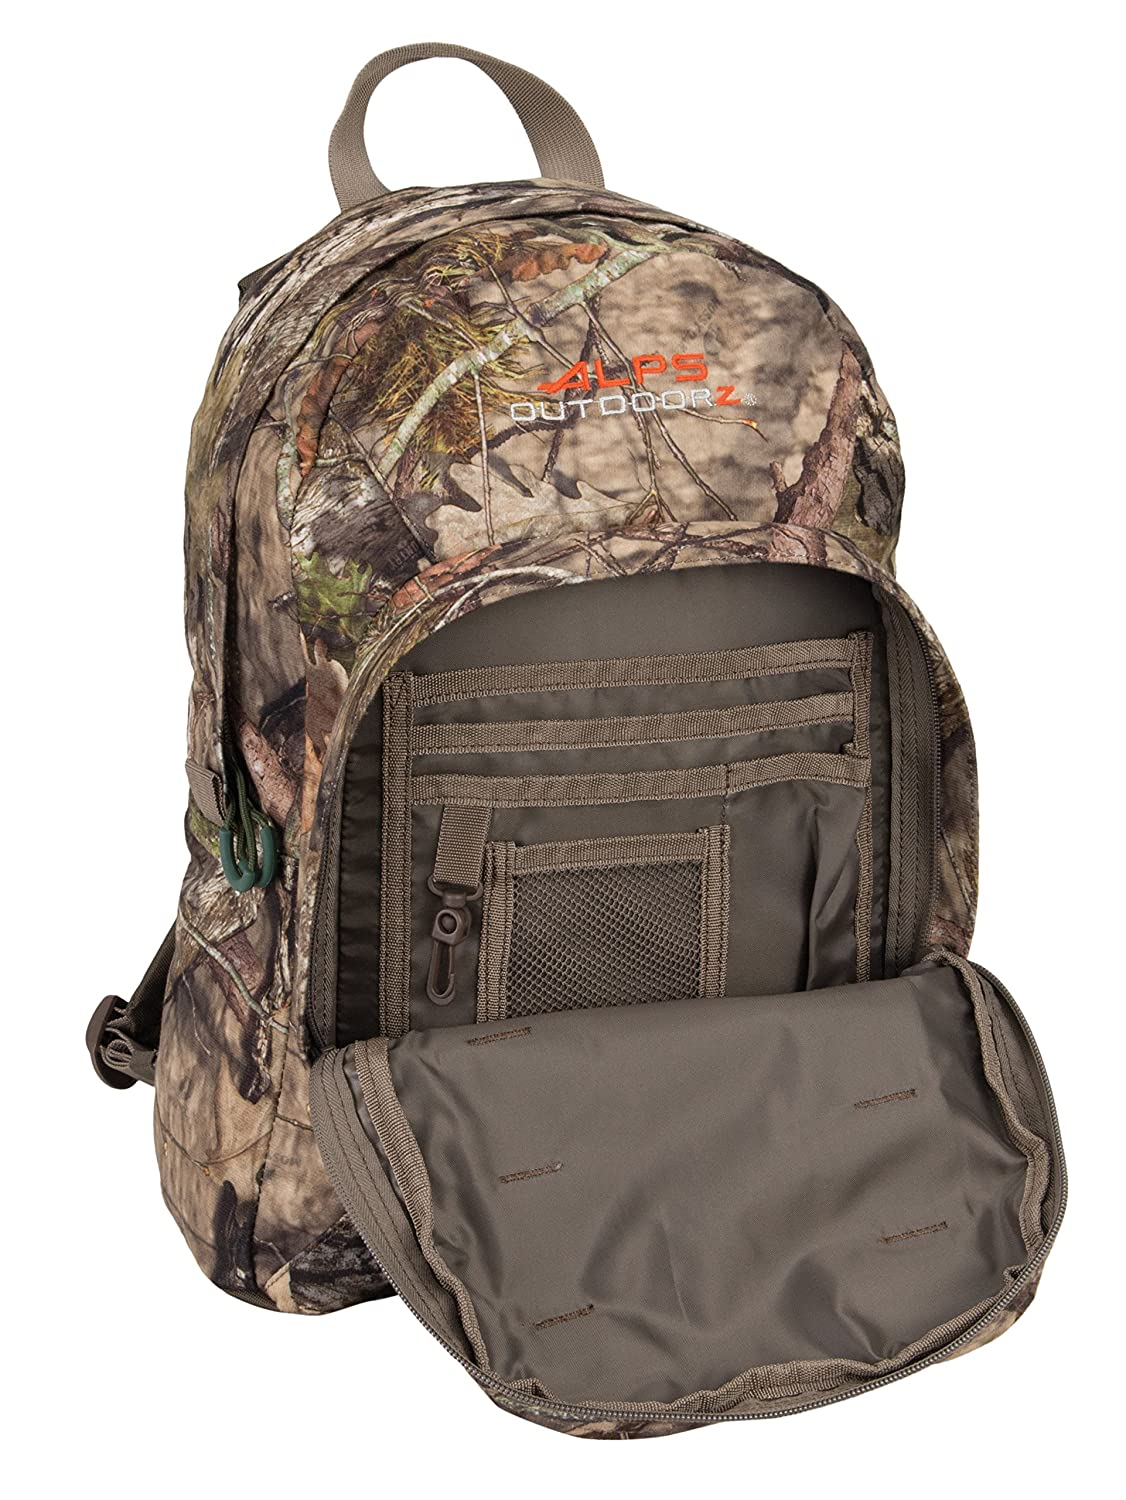 Brushed Realtree Xtra HD ALPS OutdoorZ 9605100 Ranger Day Pack